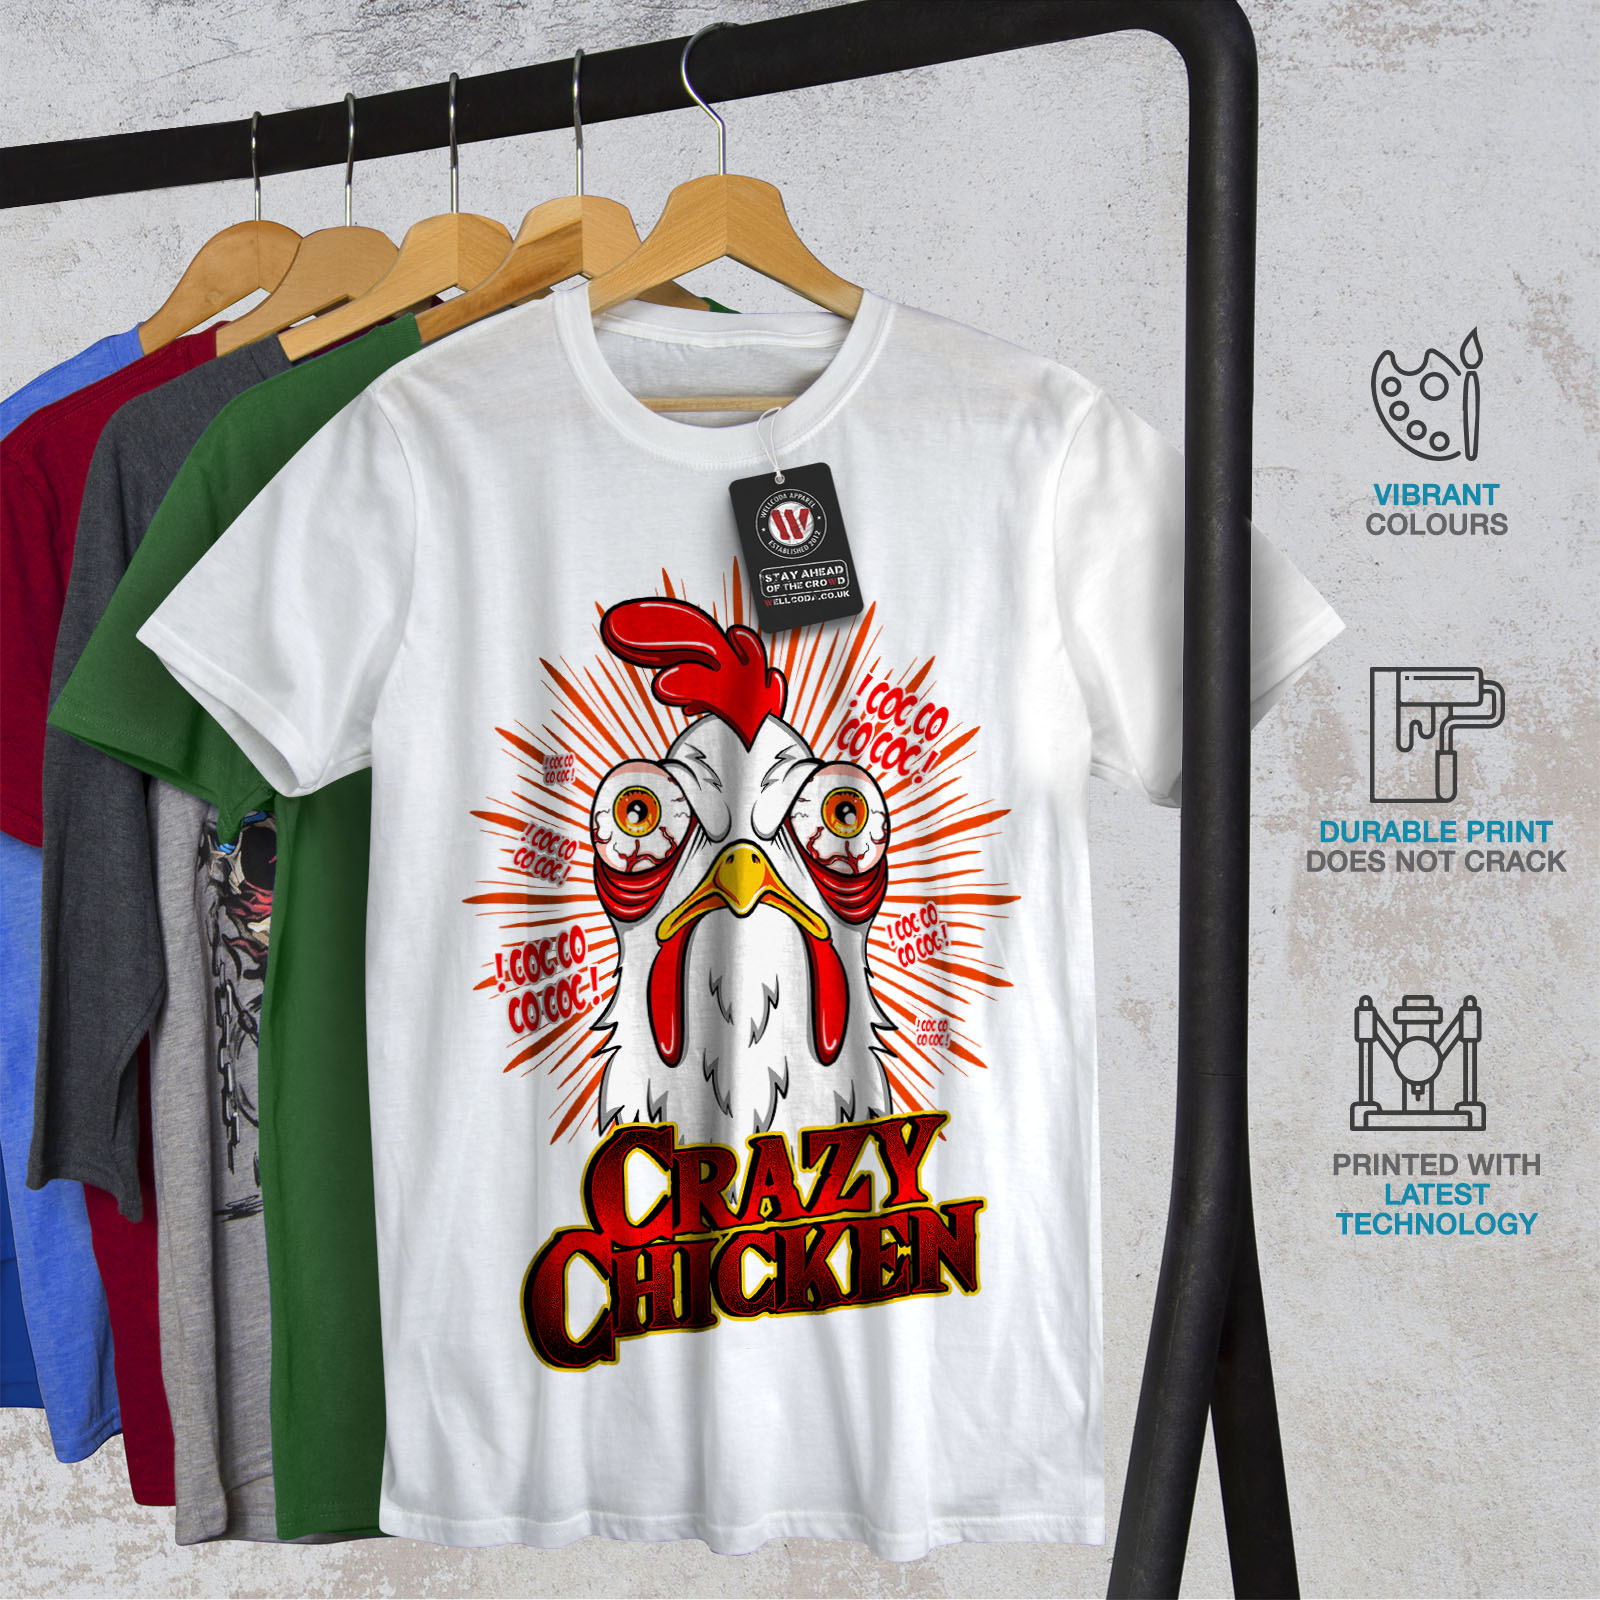 thumbnail 12 - Wellcoda-Crazy-Chicken-Mens-T-shirt-Funny-Face-Graphic-Design-Printed-Tee